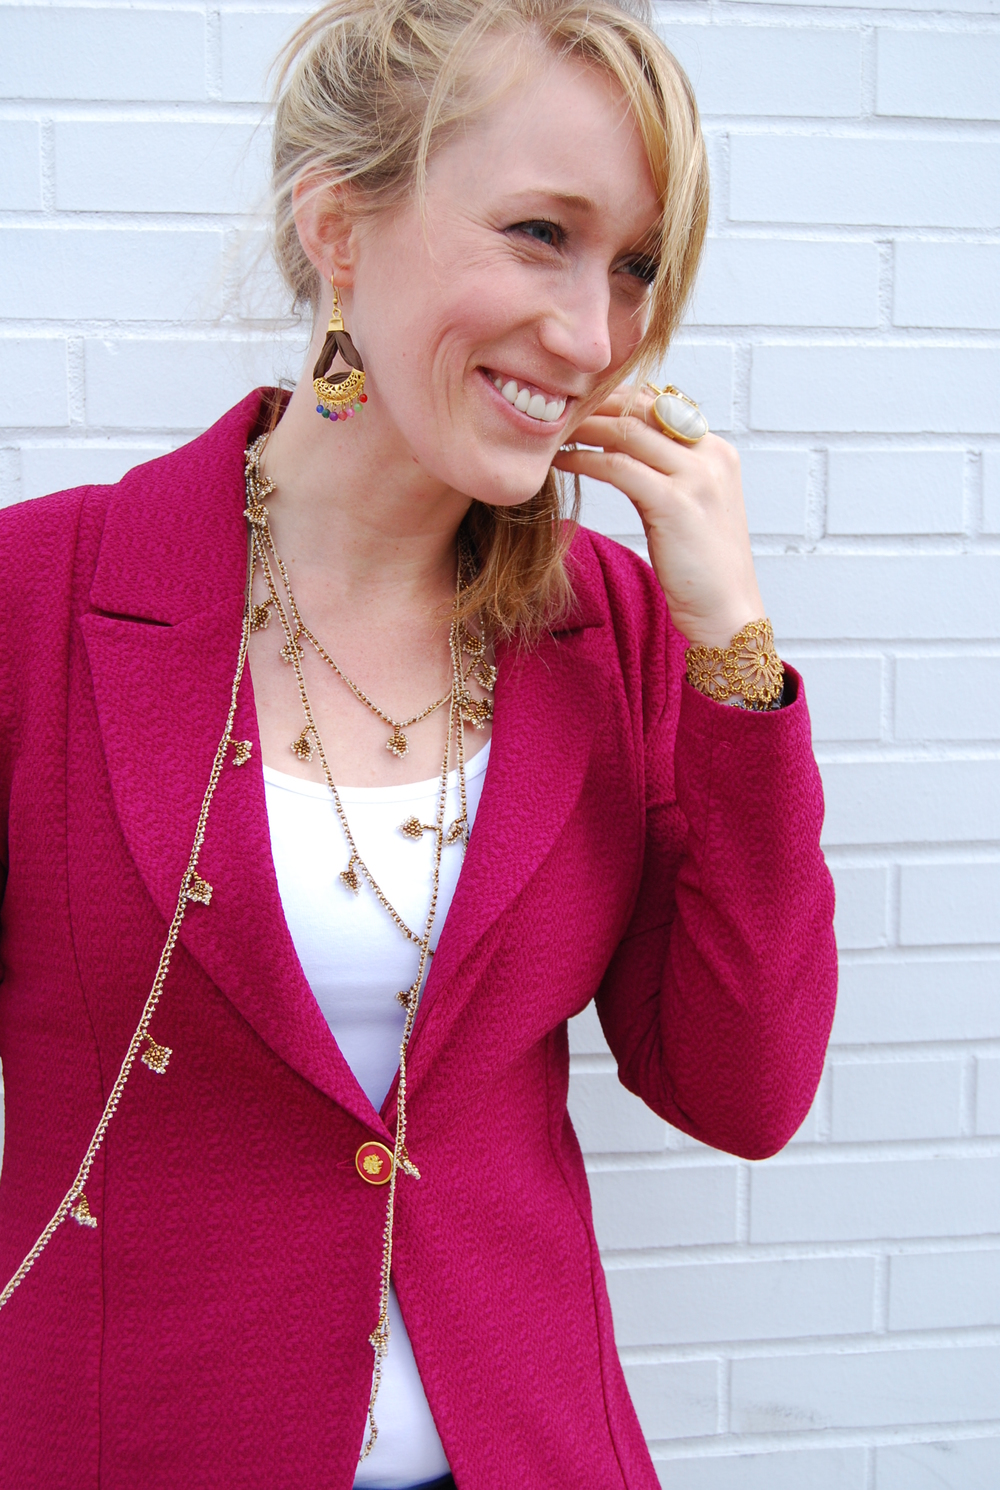 High Low raspberry blazer $78 // OYA lace creative wrap $98 // OYA lace bracelet $48 // Gold + silk earring $32